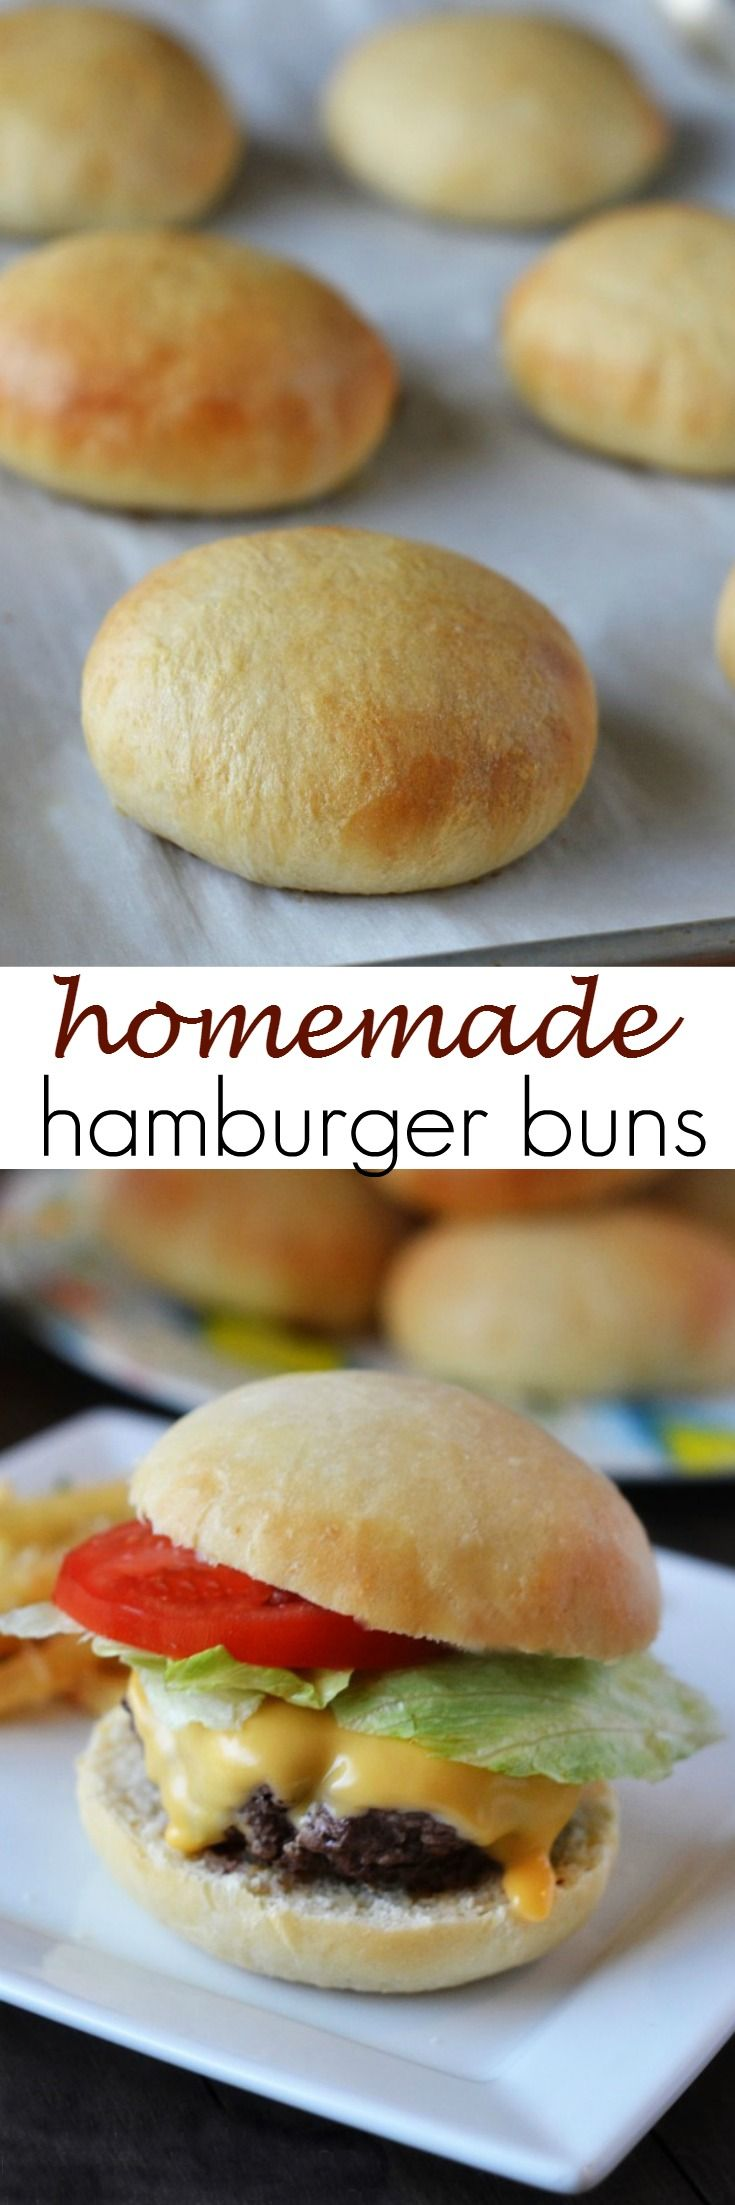 I've been a hard core domestic diva, lately. I don't know what's come over me. I've been whipping up Homemade Ranch Dressing, Homemade Taco Seasoning, Homemade French Fries and now Homemade Hamburger Buns… I really need to get out more. That being said, it's ALL been worth it. Especially these hamburger buns! They... Read More »